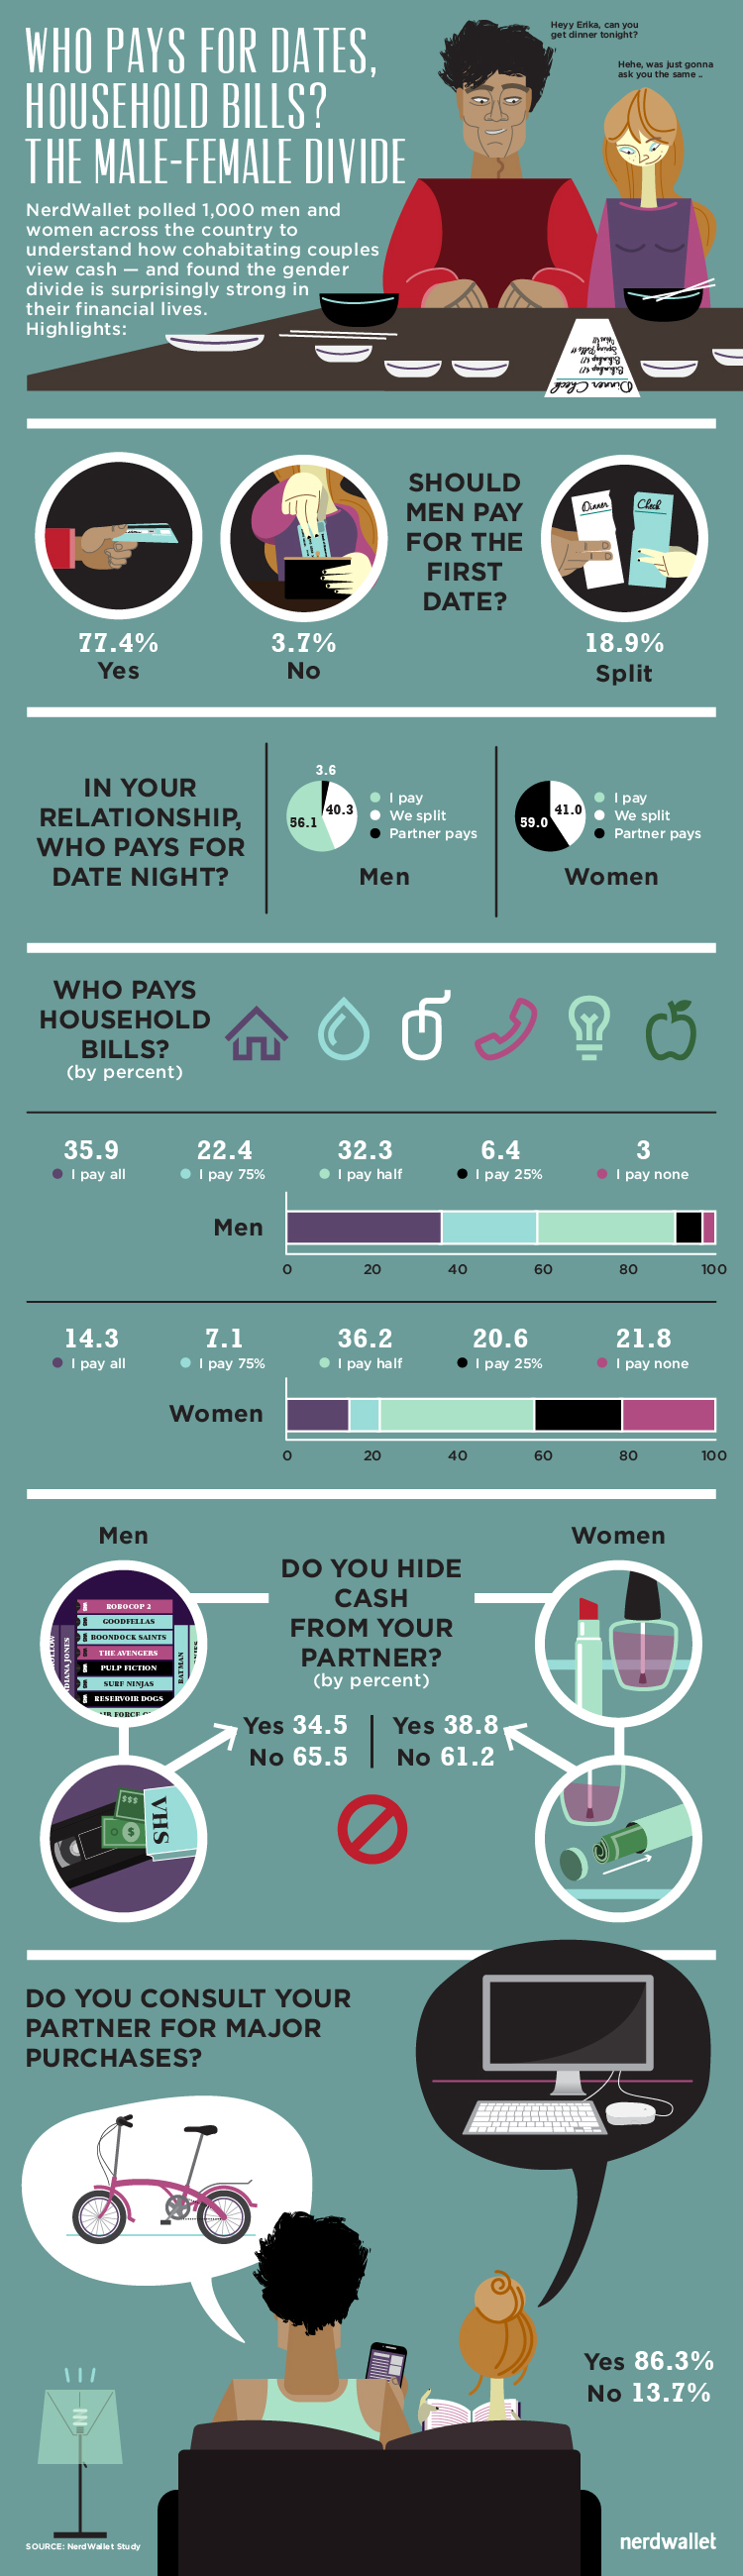 finances_male_female_divide_full_infographic_750x2600px_091614-72ppi-01